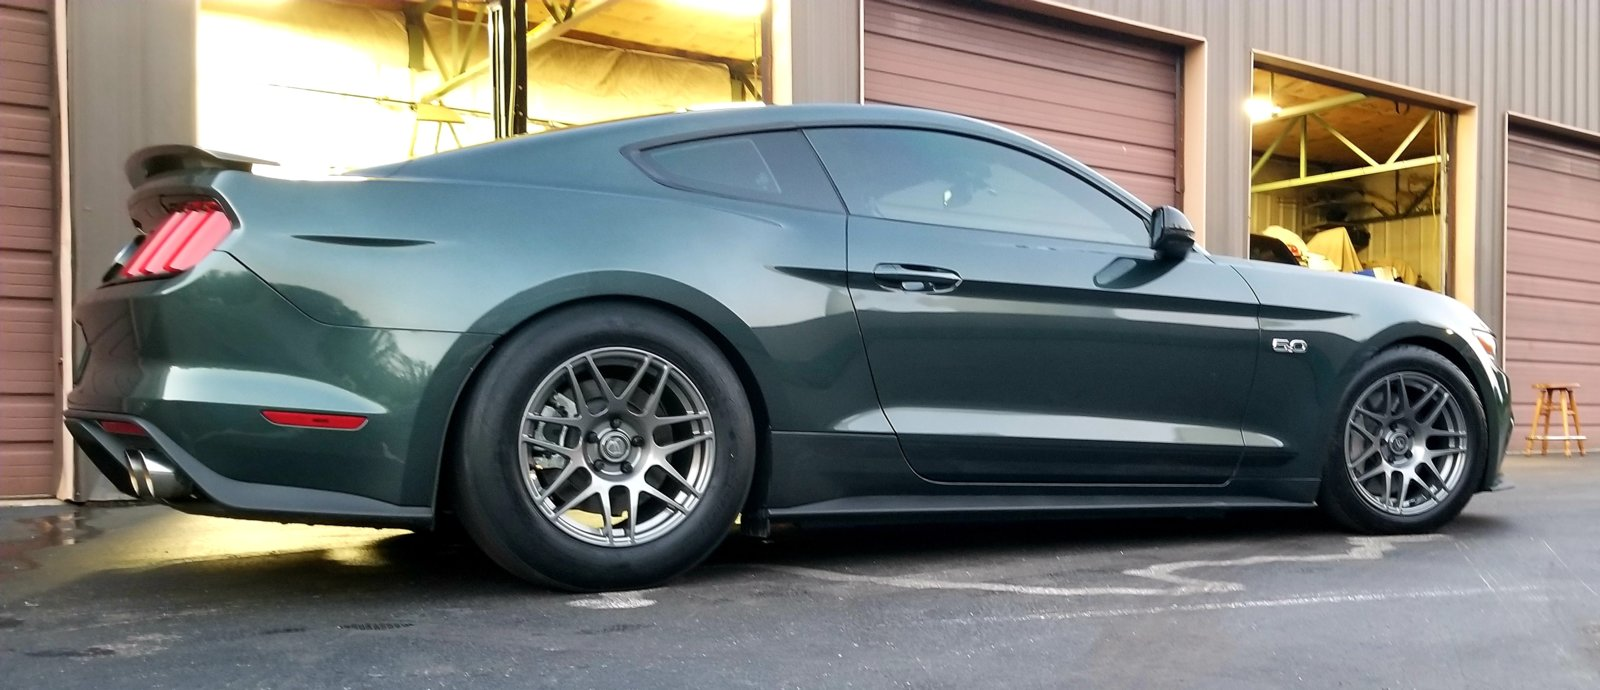 2016 Mustang Ecoboost >> Forgestar f14 dragpack? | 2015+ S550 Mustang Forum (GT ...